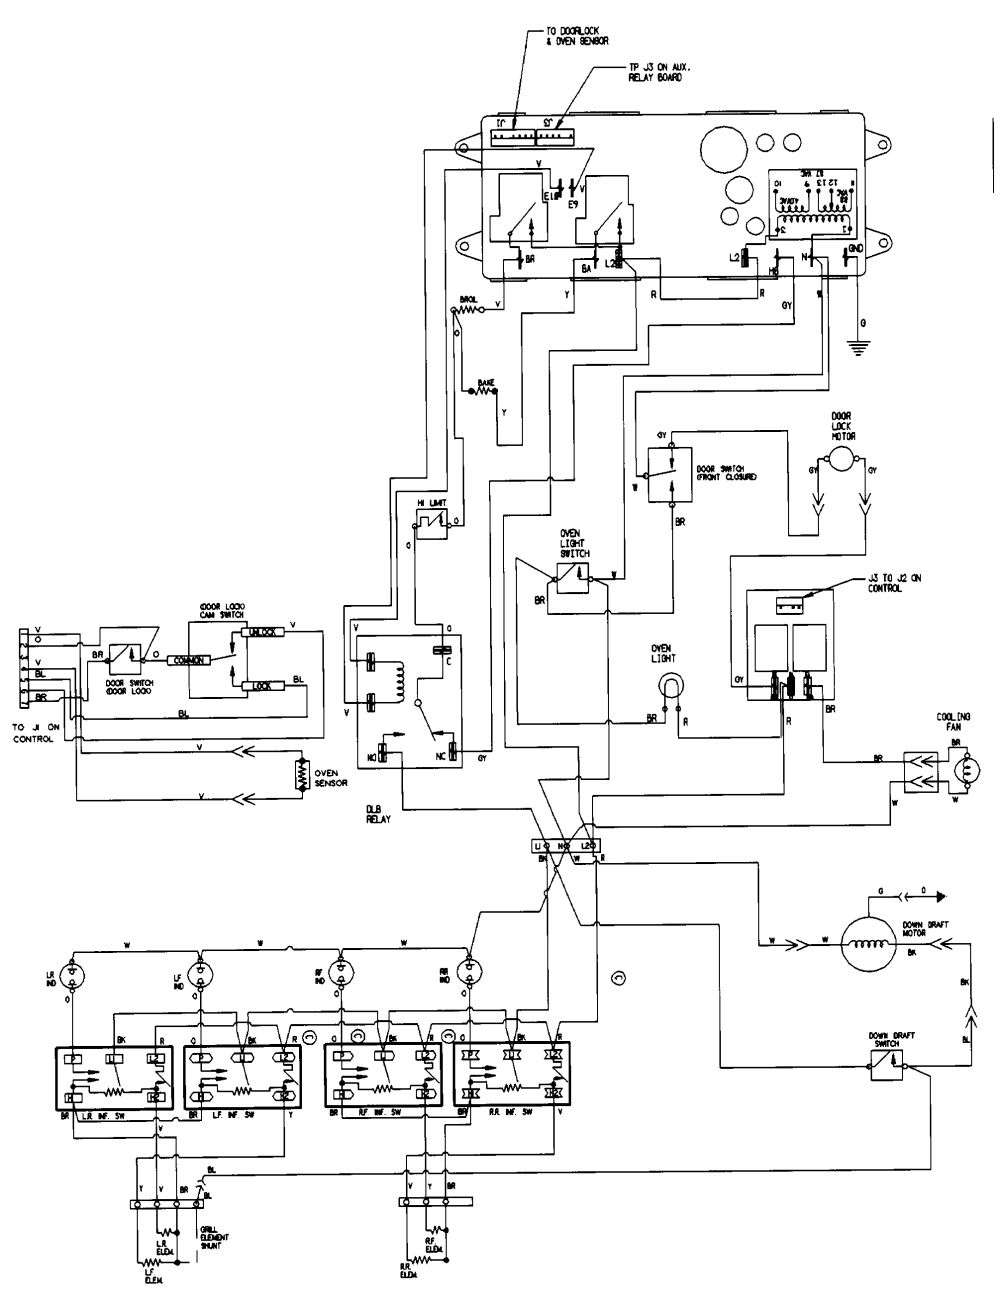 medium resolution of gas oven thermostat diagram as well whirlpool electric range wiringmaytag sve47100 electric slide in range timer